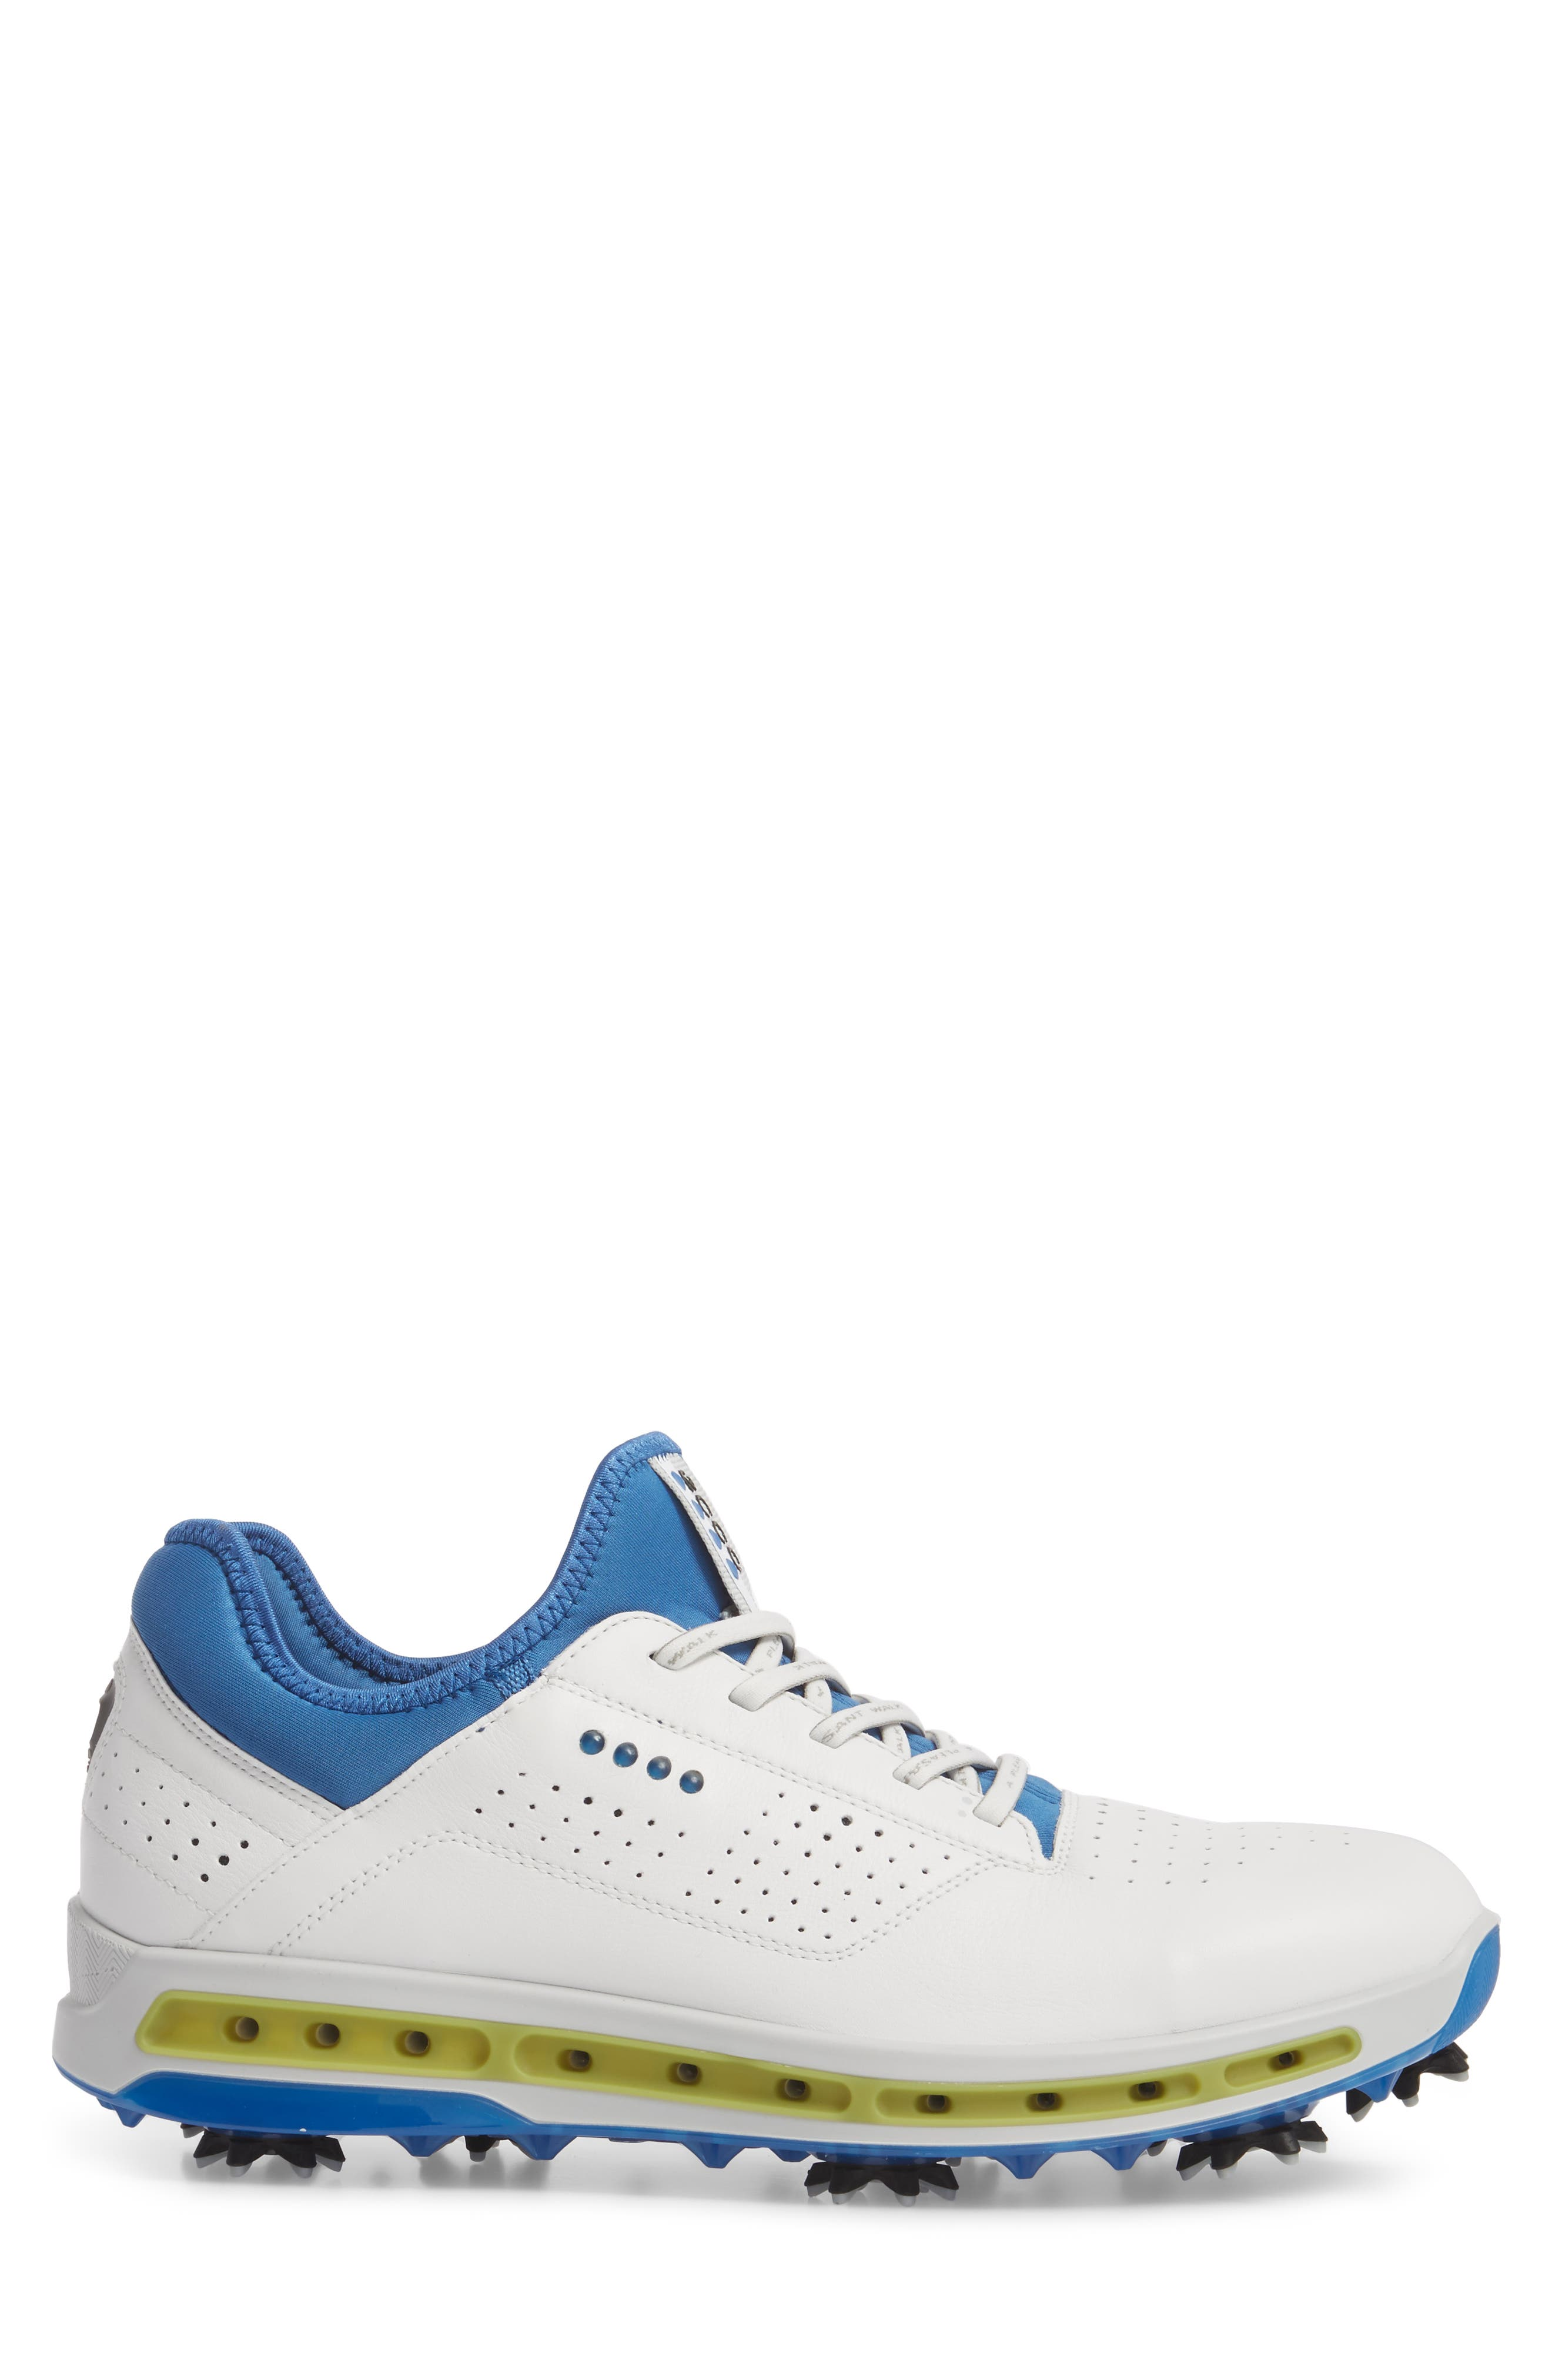 Cool 18 Gore-Tex Golf Shoe,                             Alternate thumbnail 3, color,                             White Leather